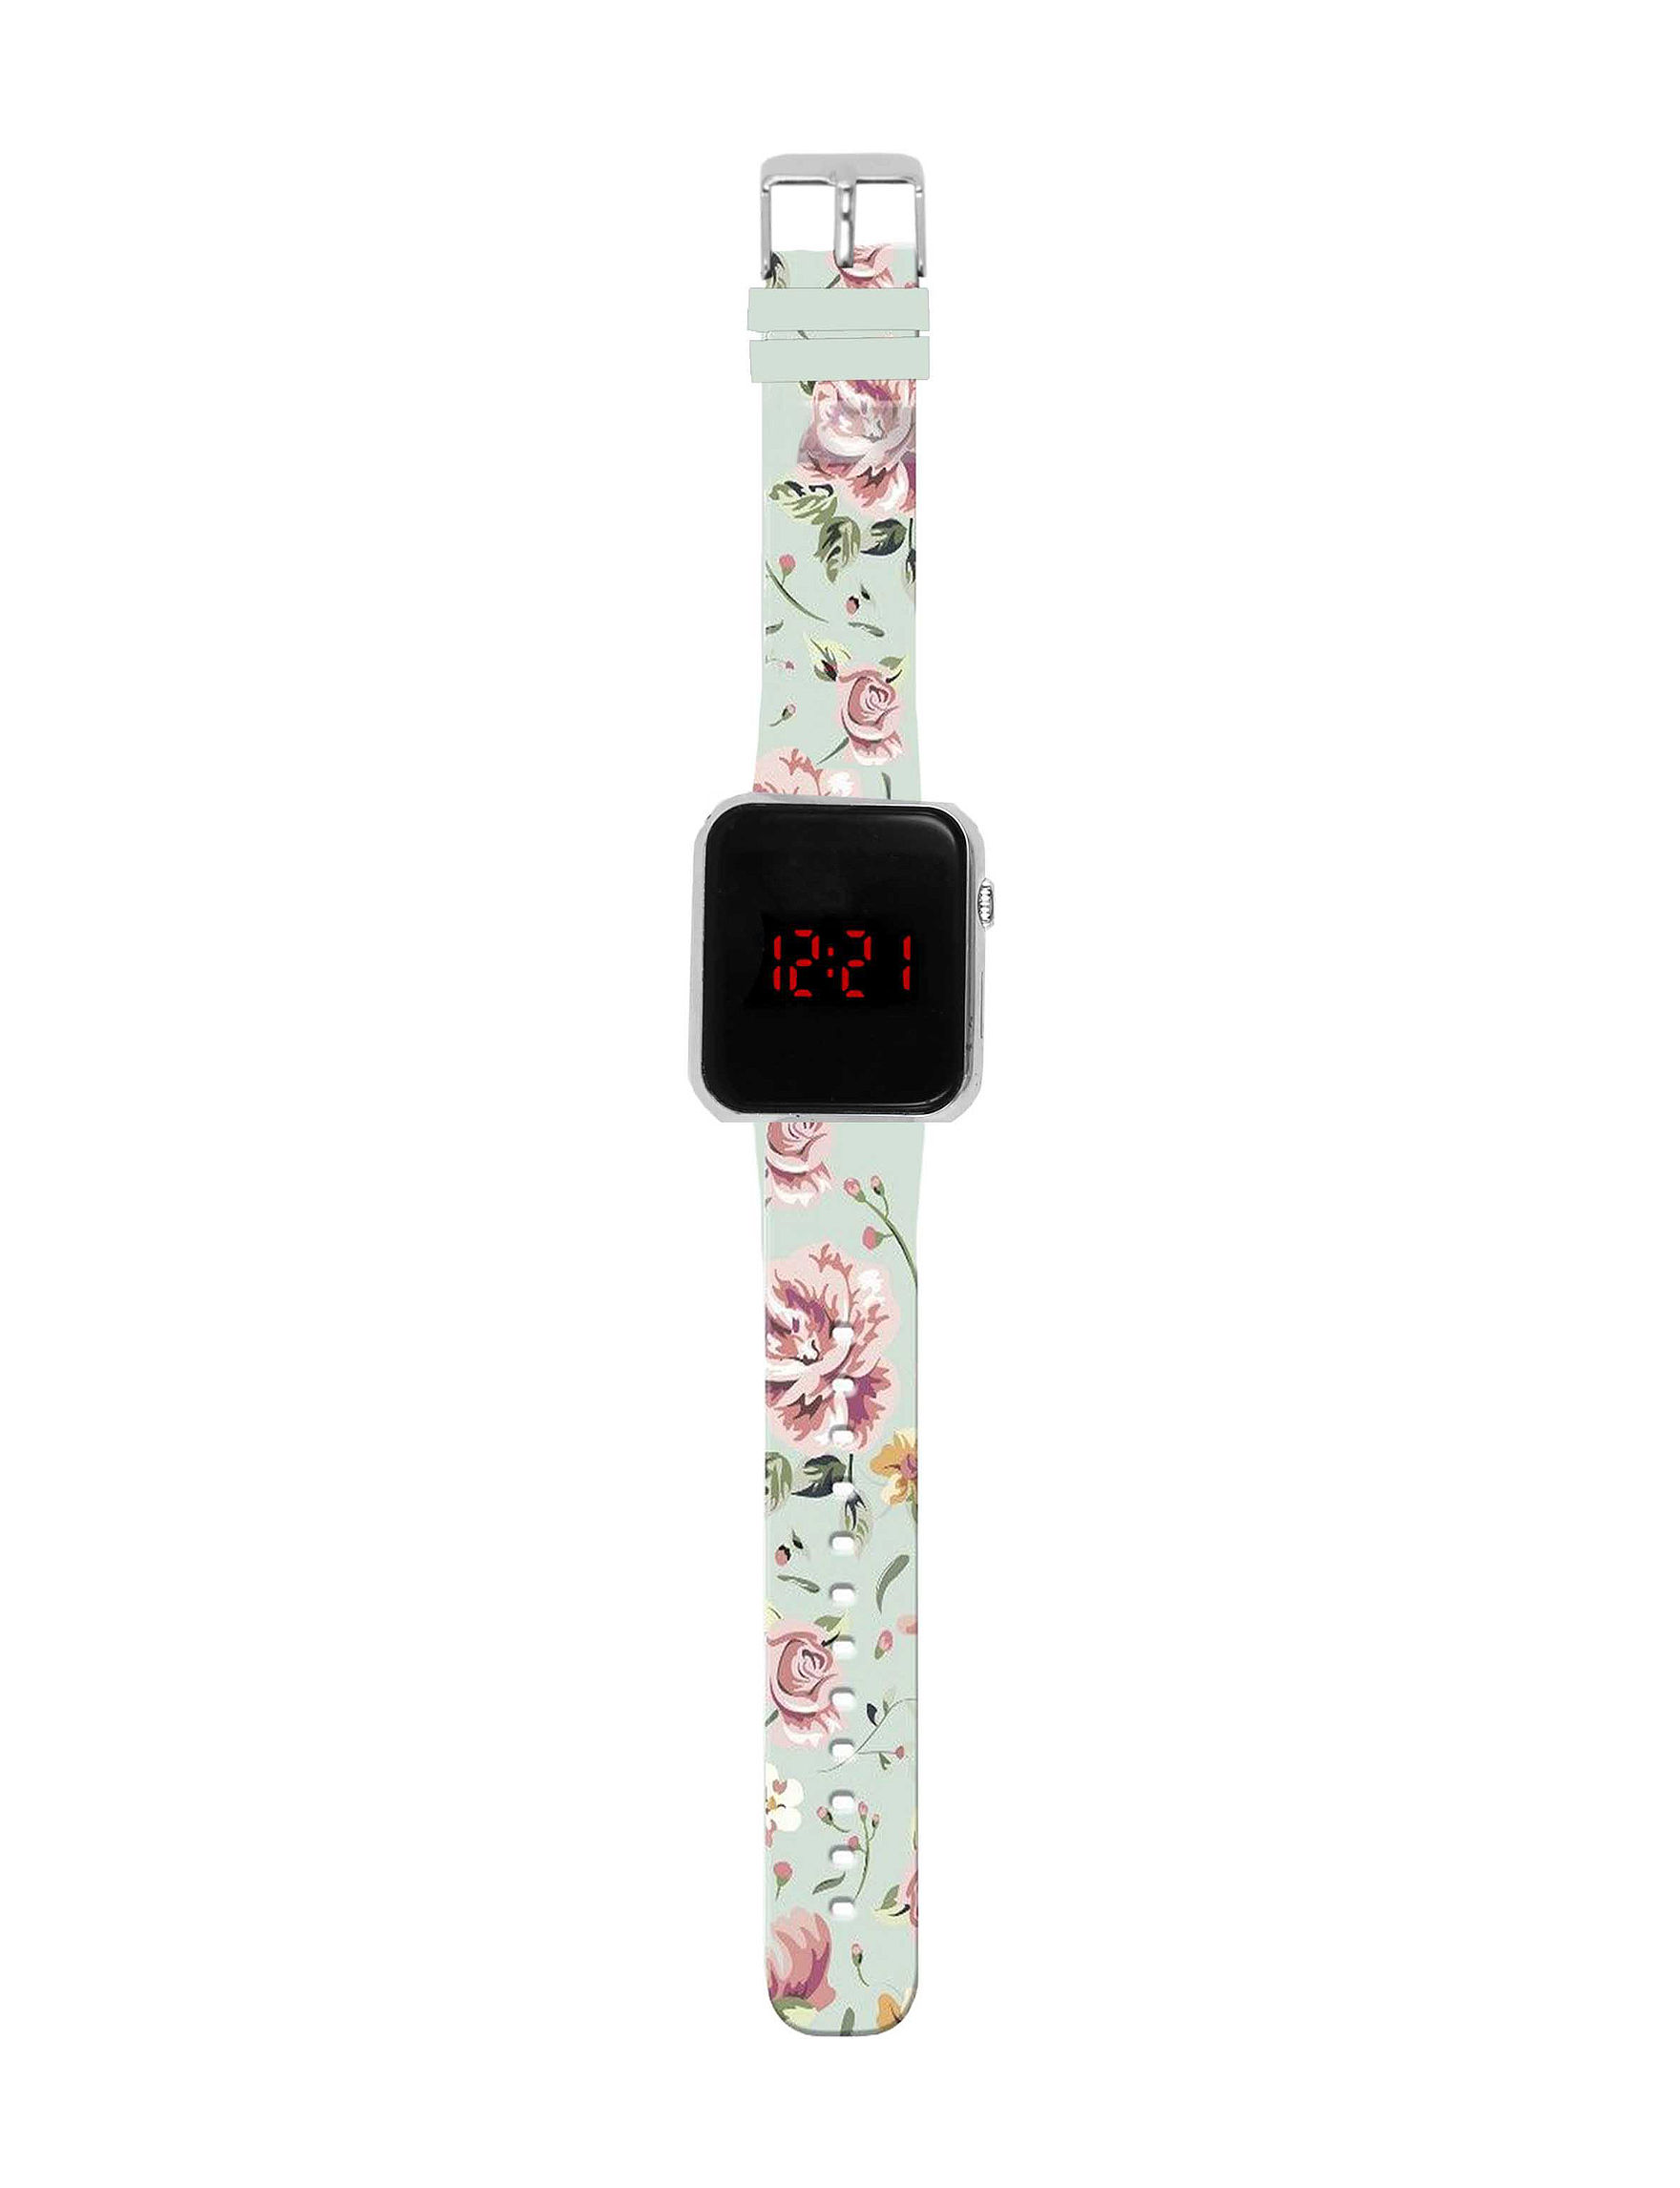 Global Time Floral Print Fashion Watches